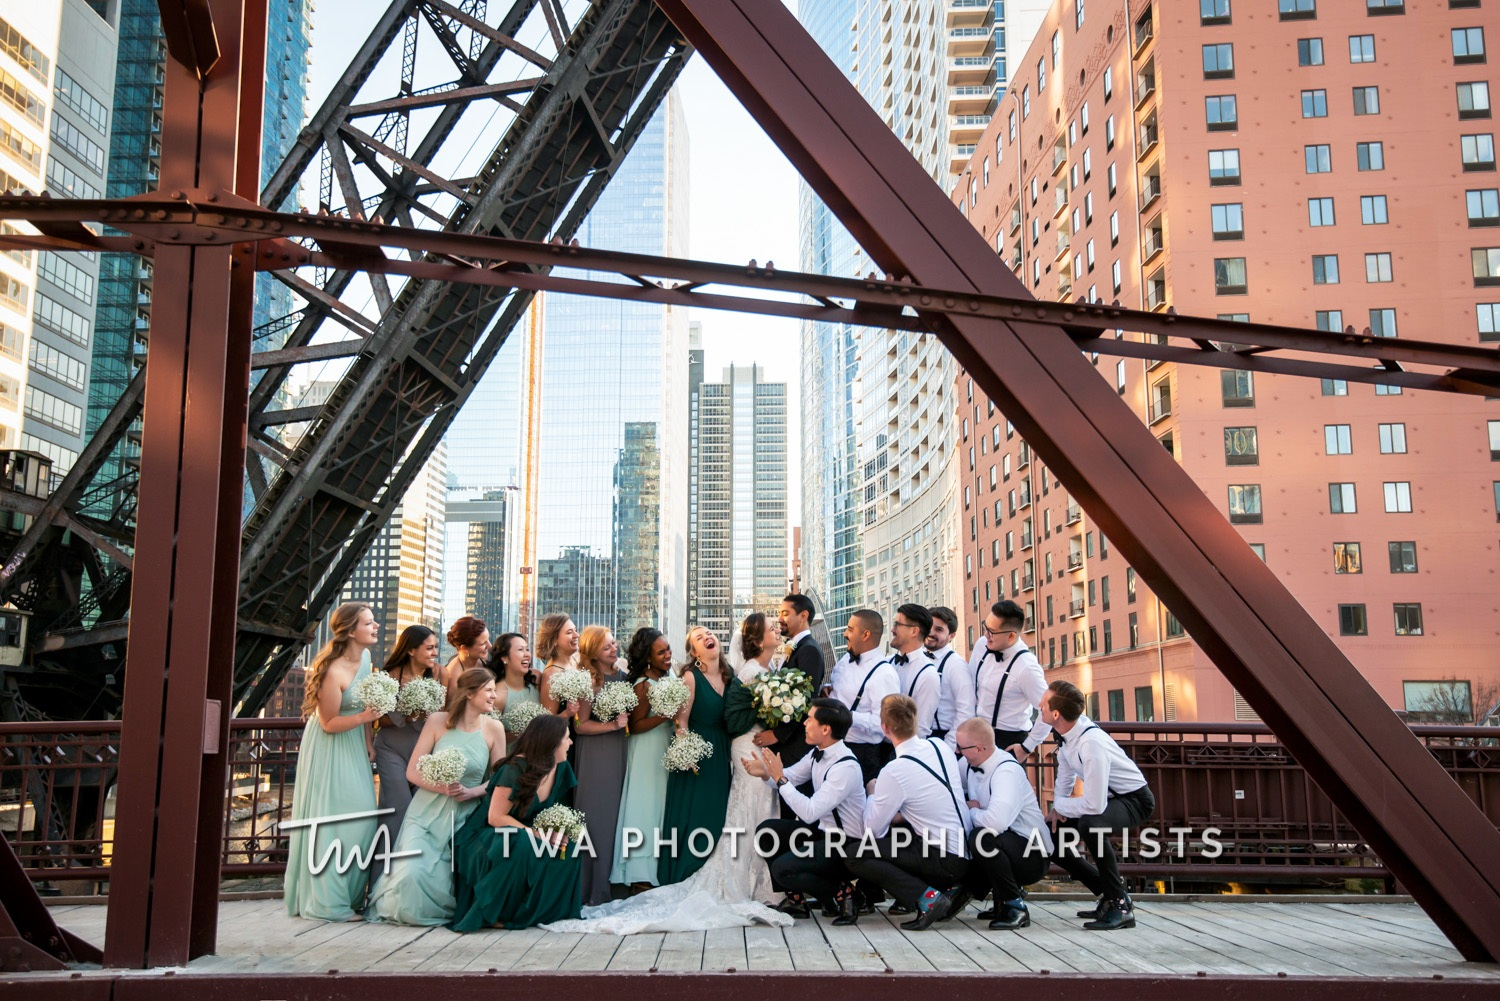 Chicago-Wedding-Photographer-TWA-Photographic-Artists-Harold-Washington-Library-Winter-Garden_Early_Moreno_KH_ES-0573-Edit